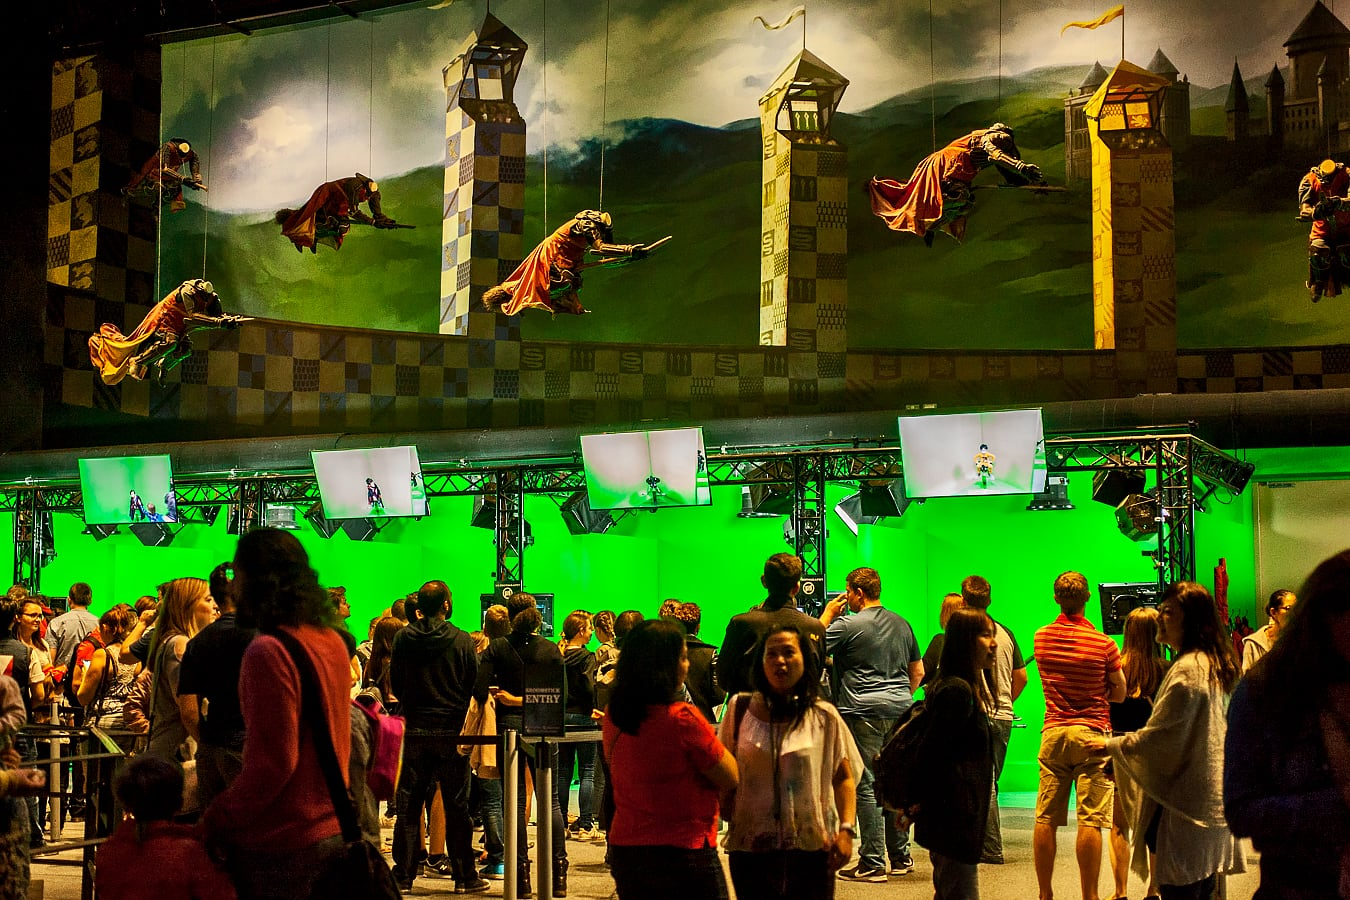 Visite au Harry Potter Warner Bros Studio de Londres - Quidditch